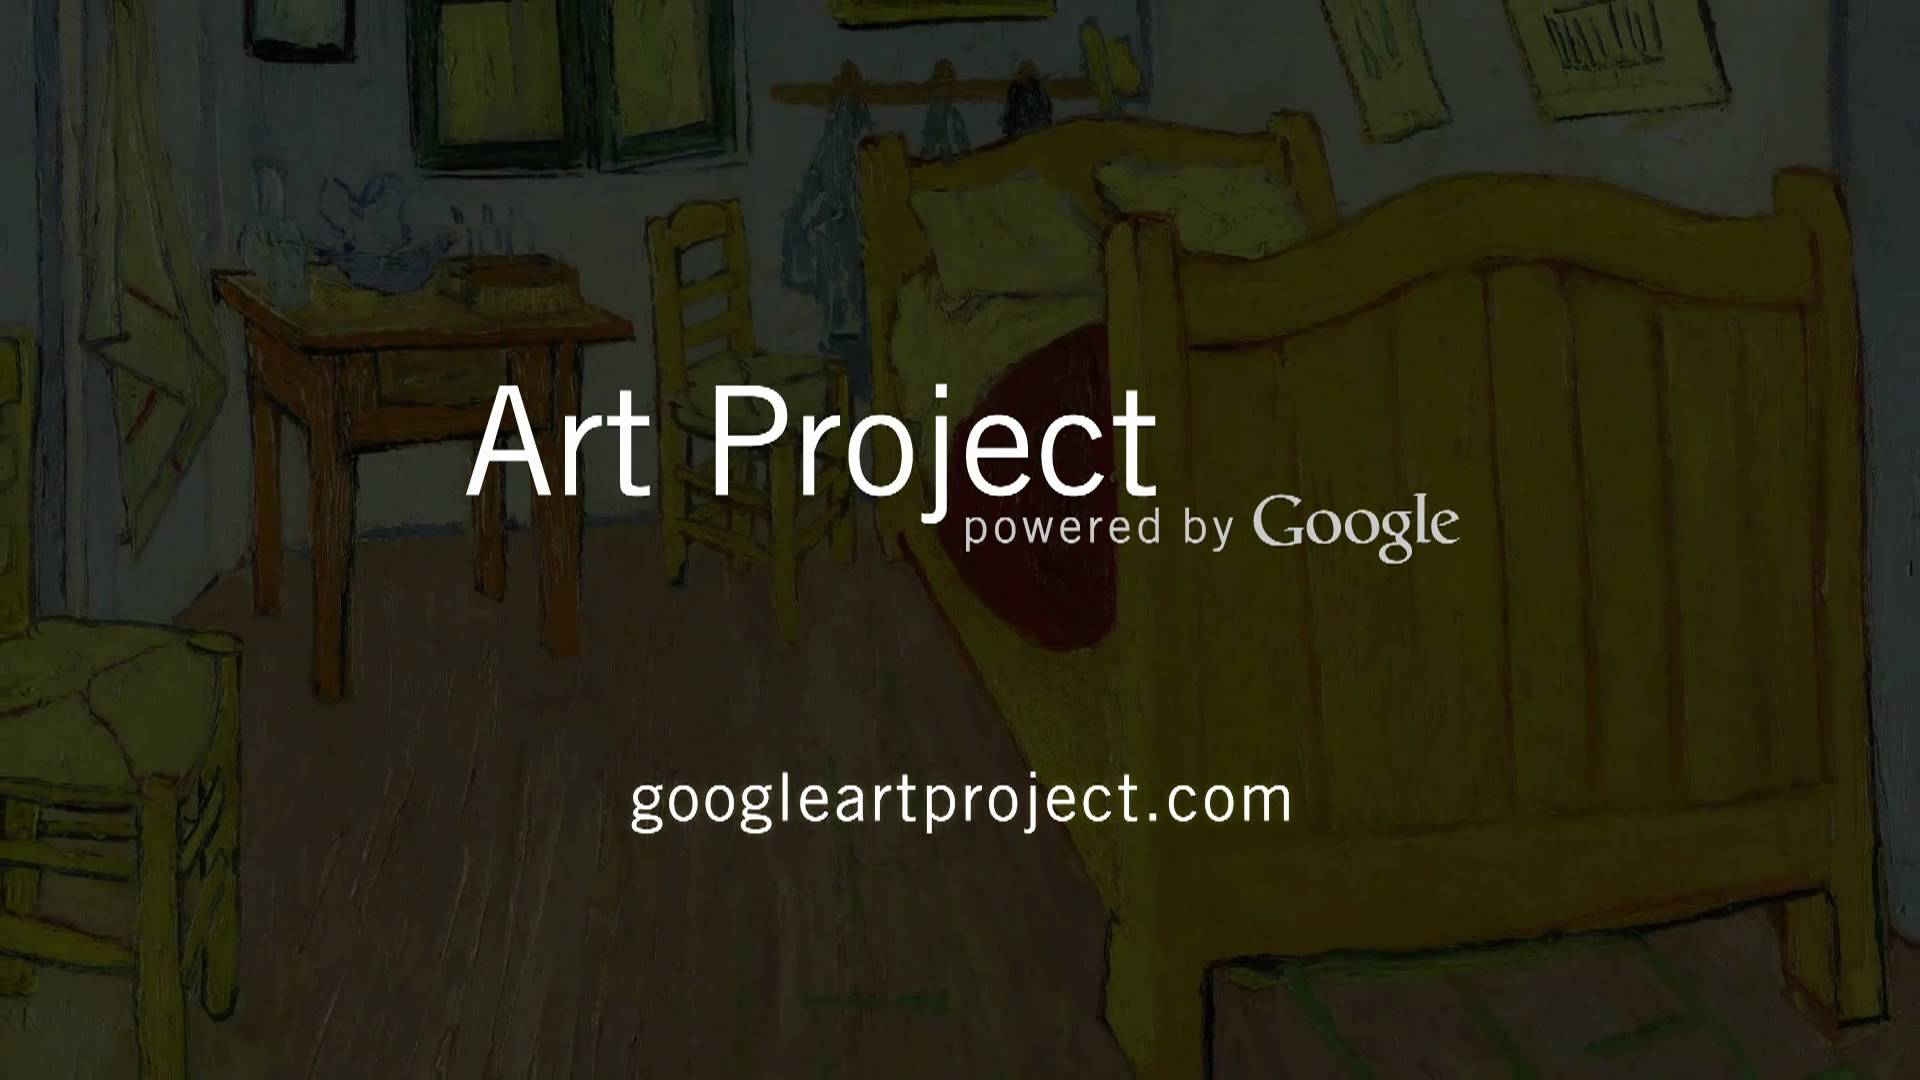 google art project The google art project is a powerful example of how digital technology can help art institutions work in partnership to reach out globally, to new audiences, and enable works of art to be explored in depth and with stunning clarity.